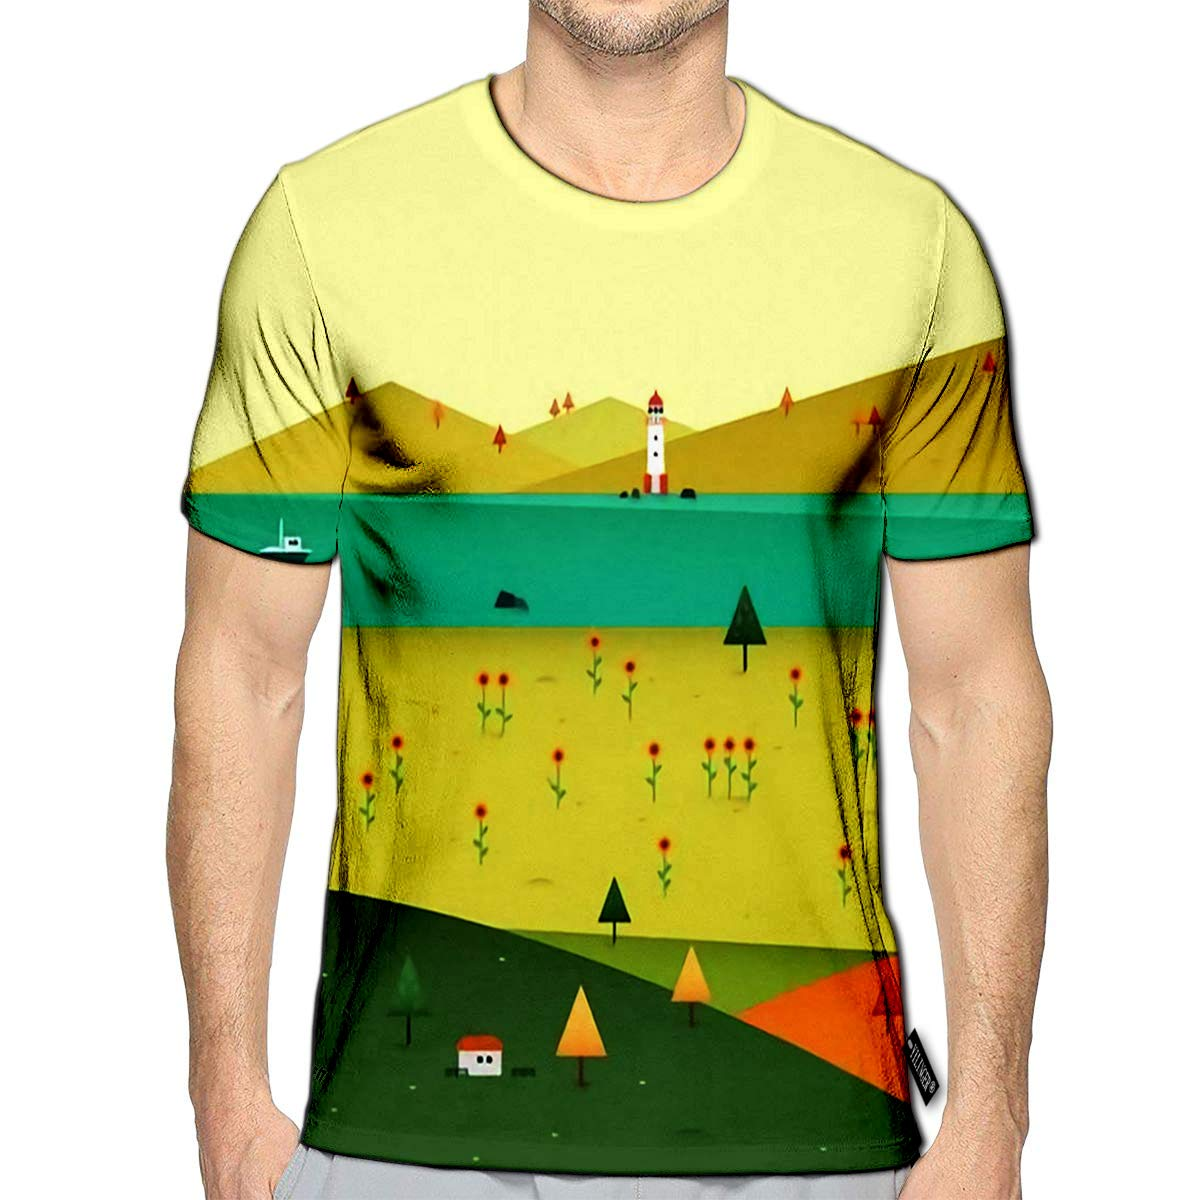 YILINGER 3D Printed T-Shirts Autumn Beautiful Landscape Short Sleeve Tops Tees